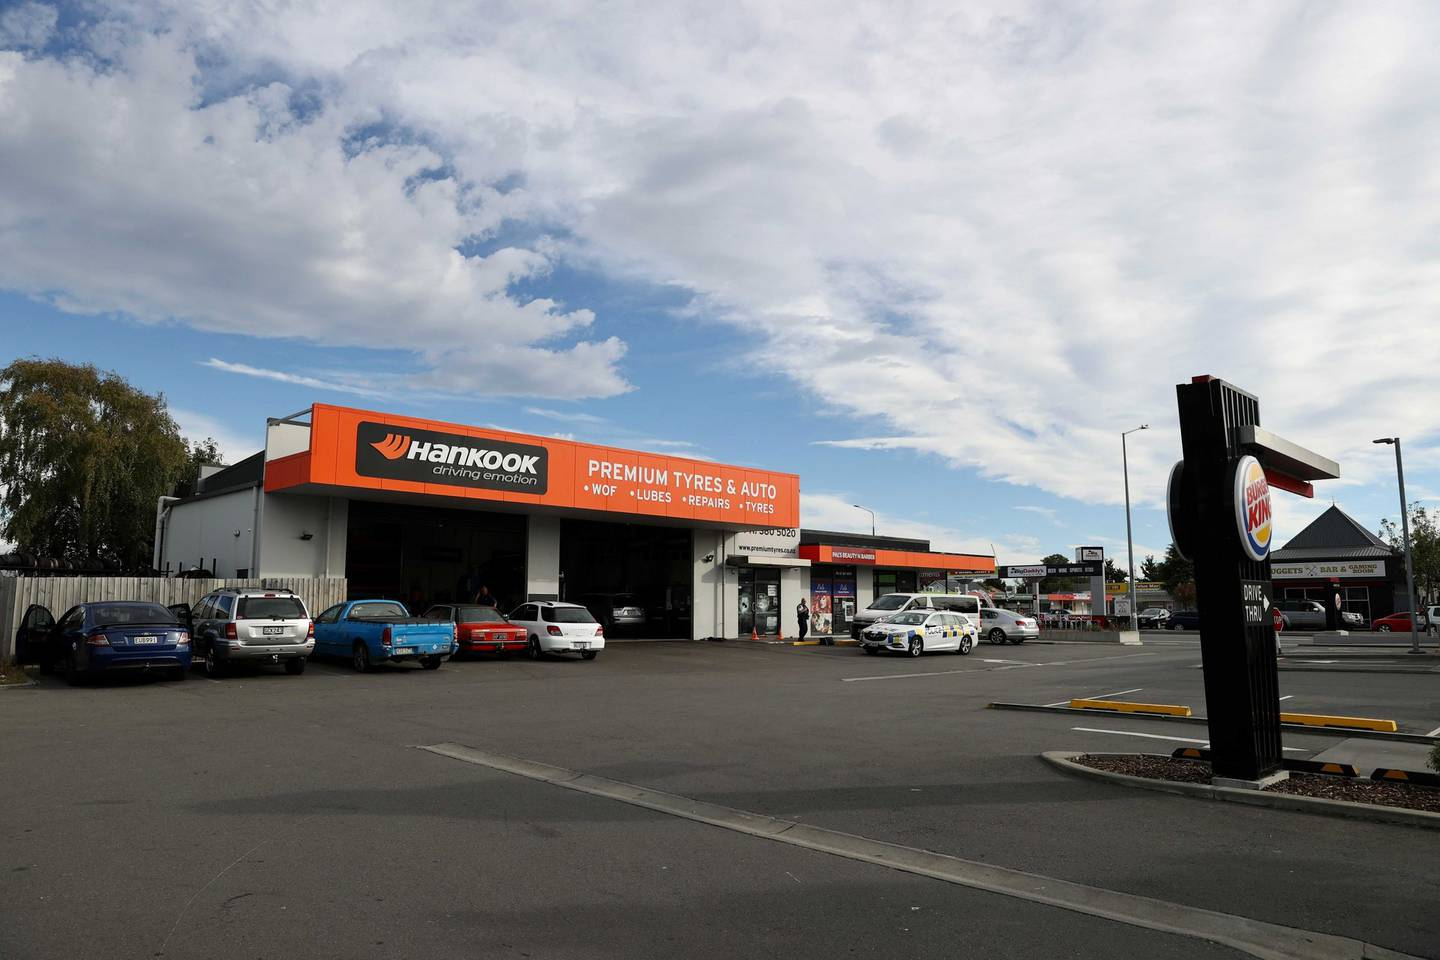 Premium Tyres & Auto on Linwood Ave was targeted early this morning. Photo: George Heard